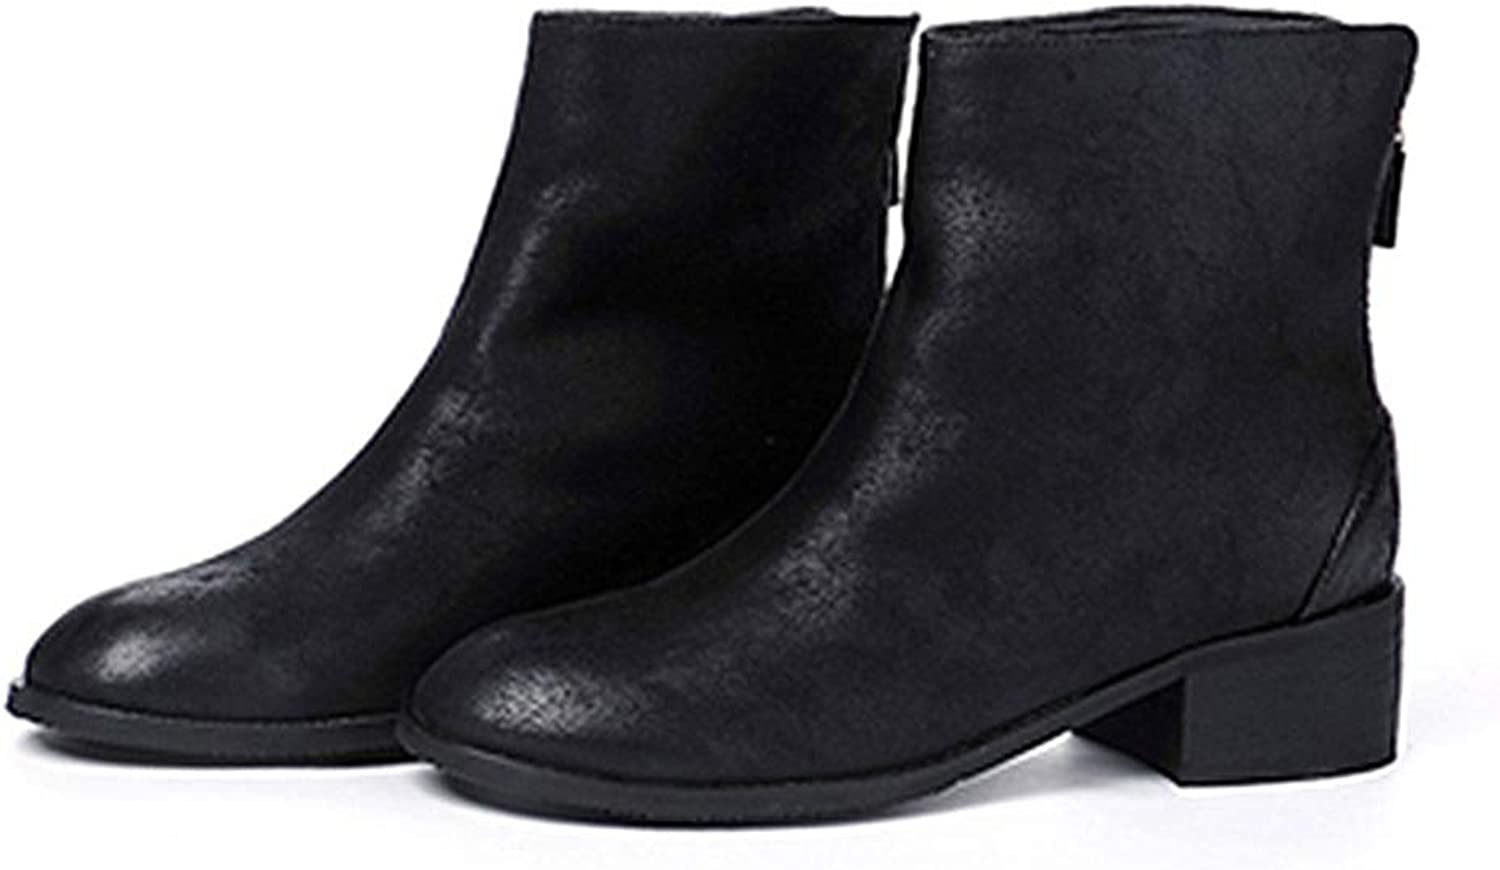 Womens Low Heel Platform Ankle Boots Sexy Round Toe Rubber Sole Short Plush Winter Zipper Up Warm Ladies shoes